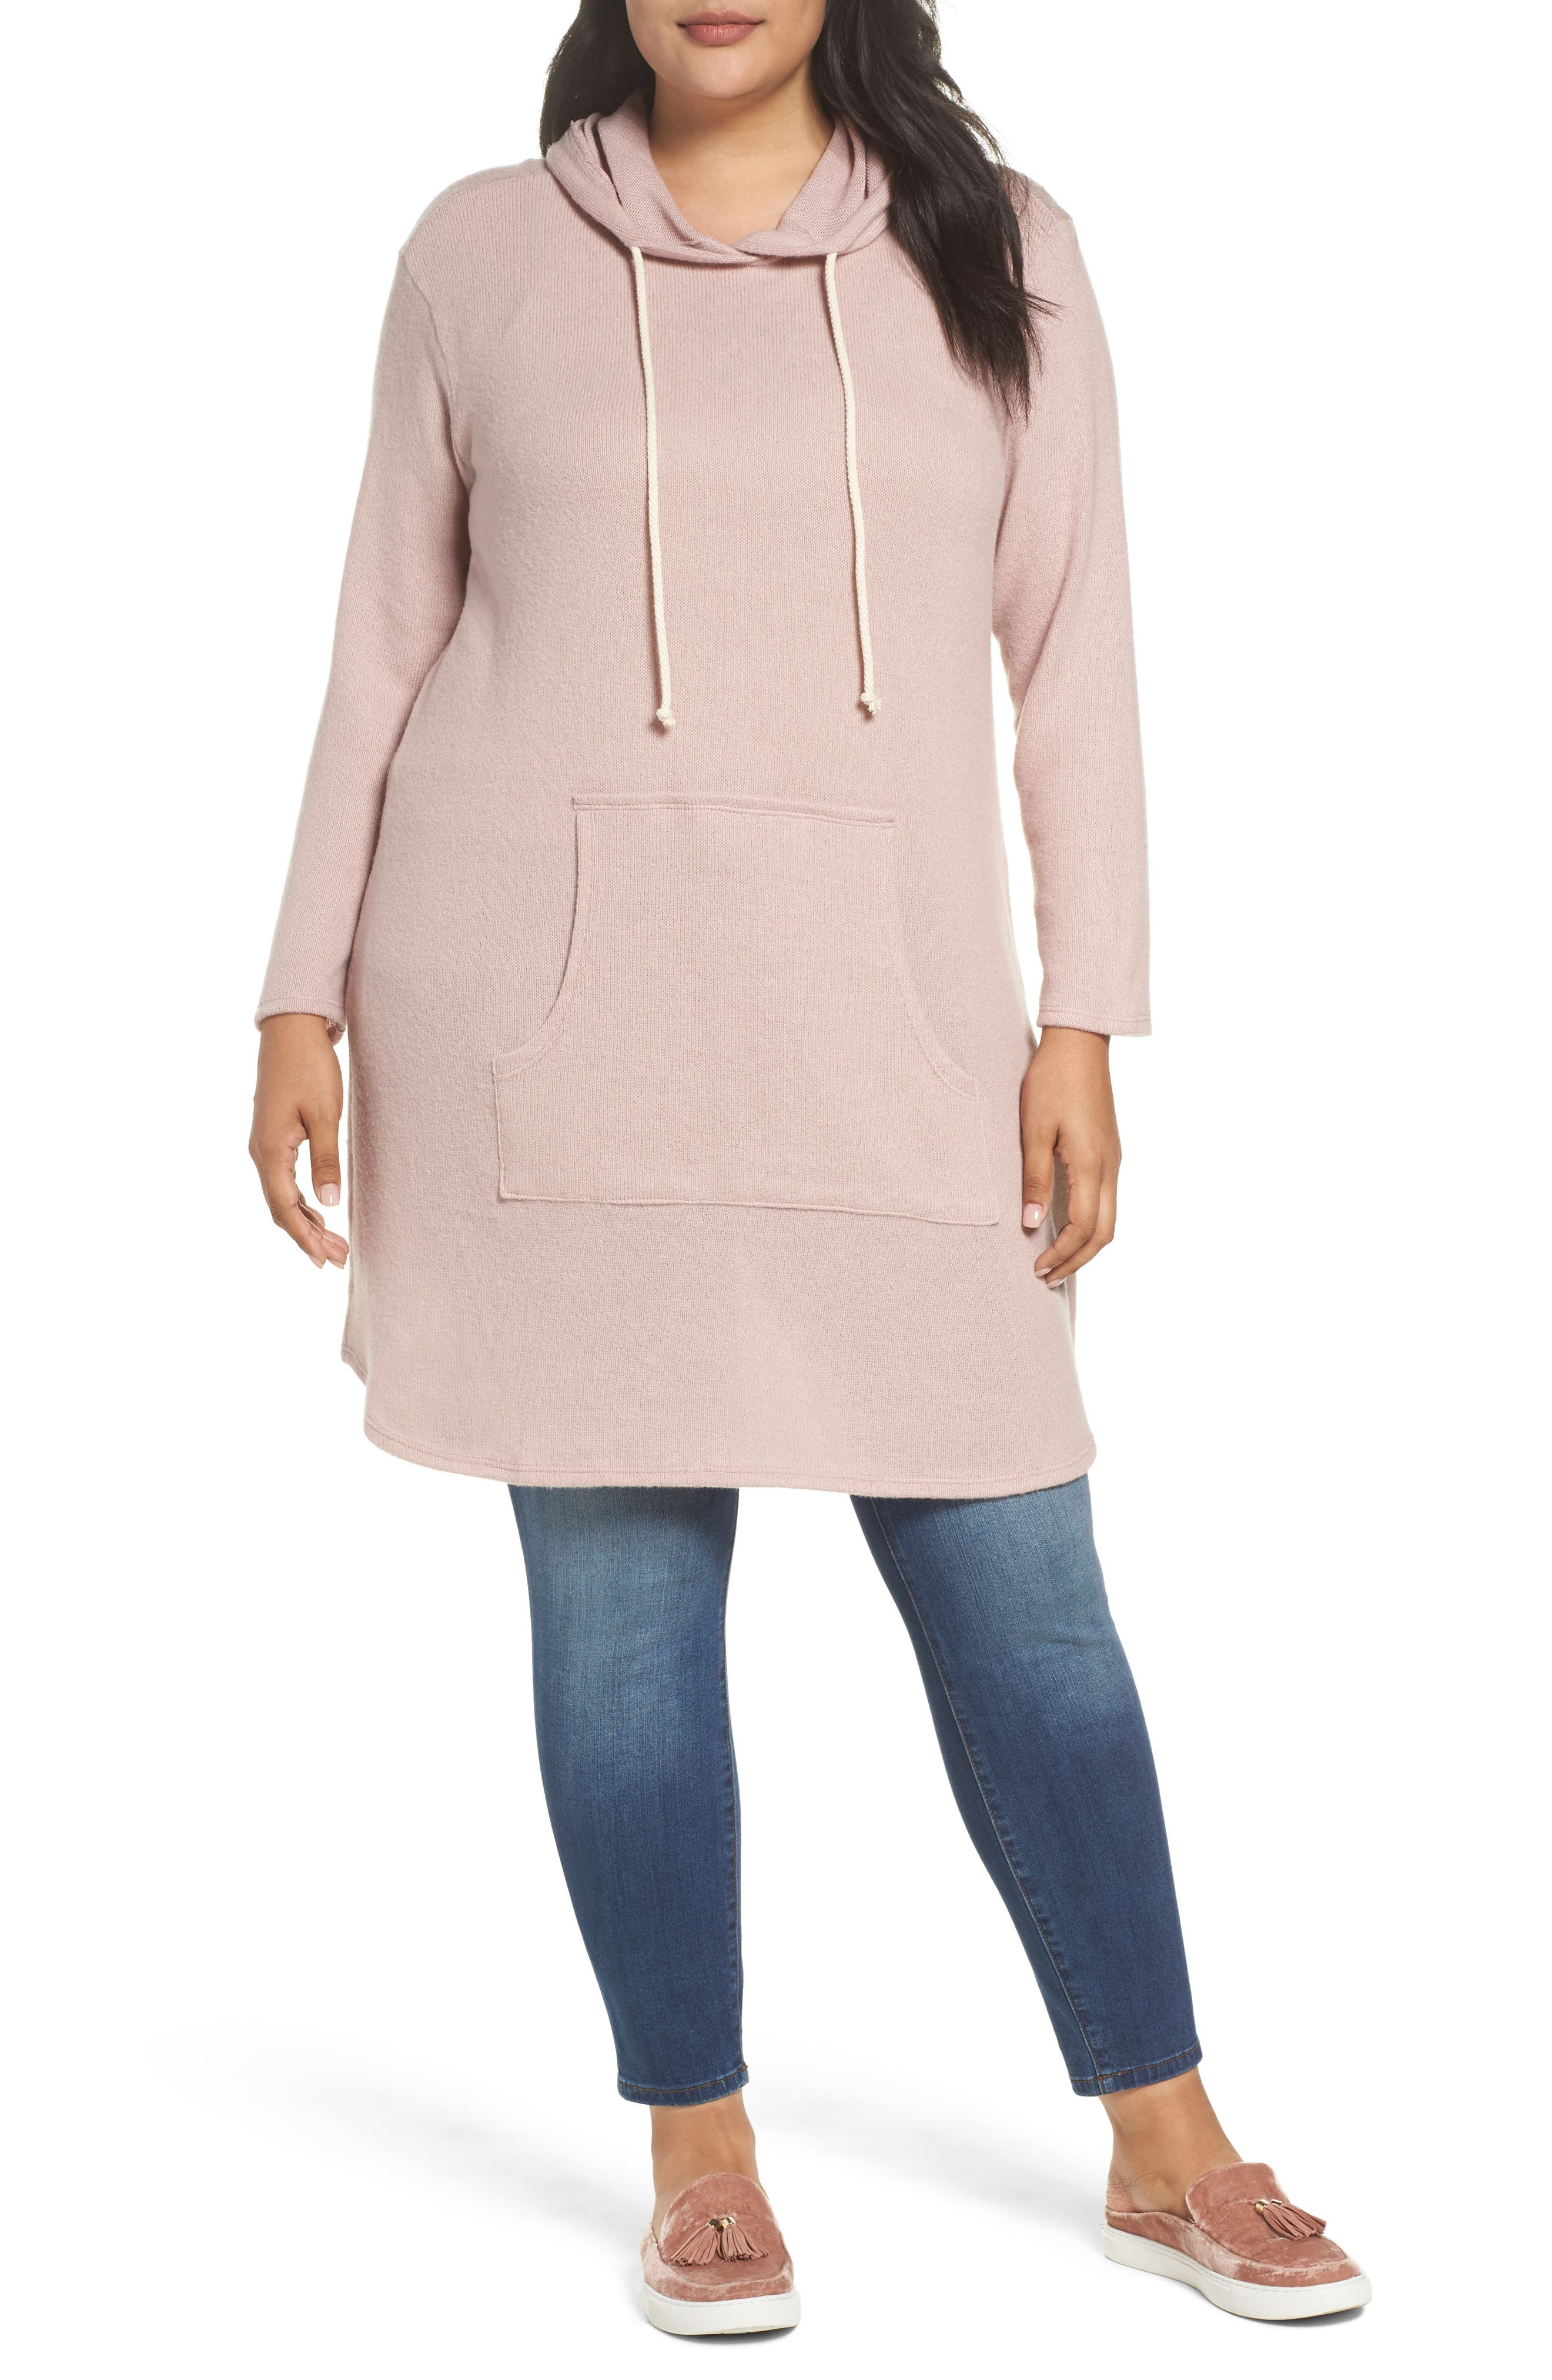 Alternate Image 1 Selected - Caslon® Hooded Knit Tunic (Plus Size)